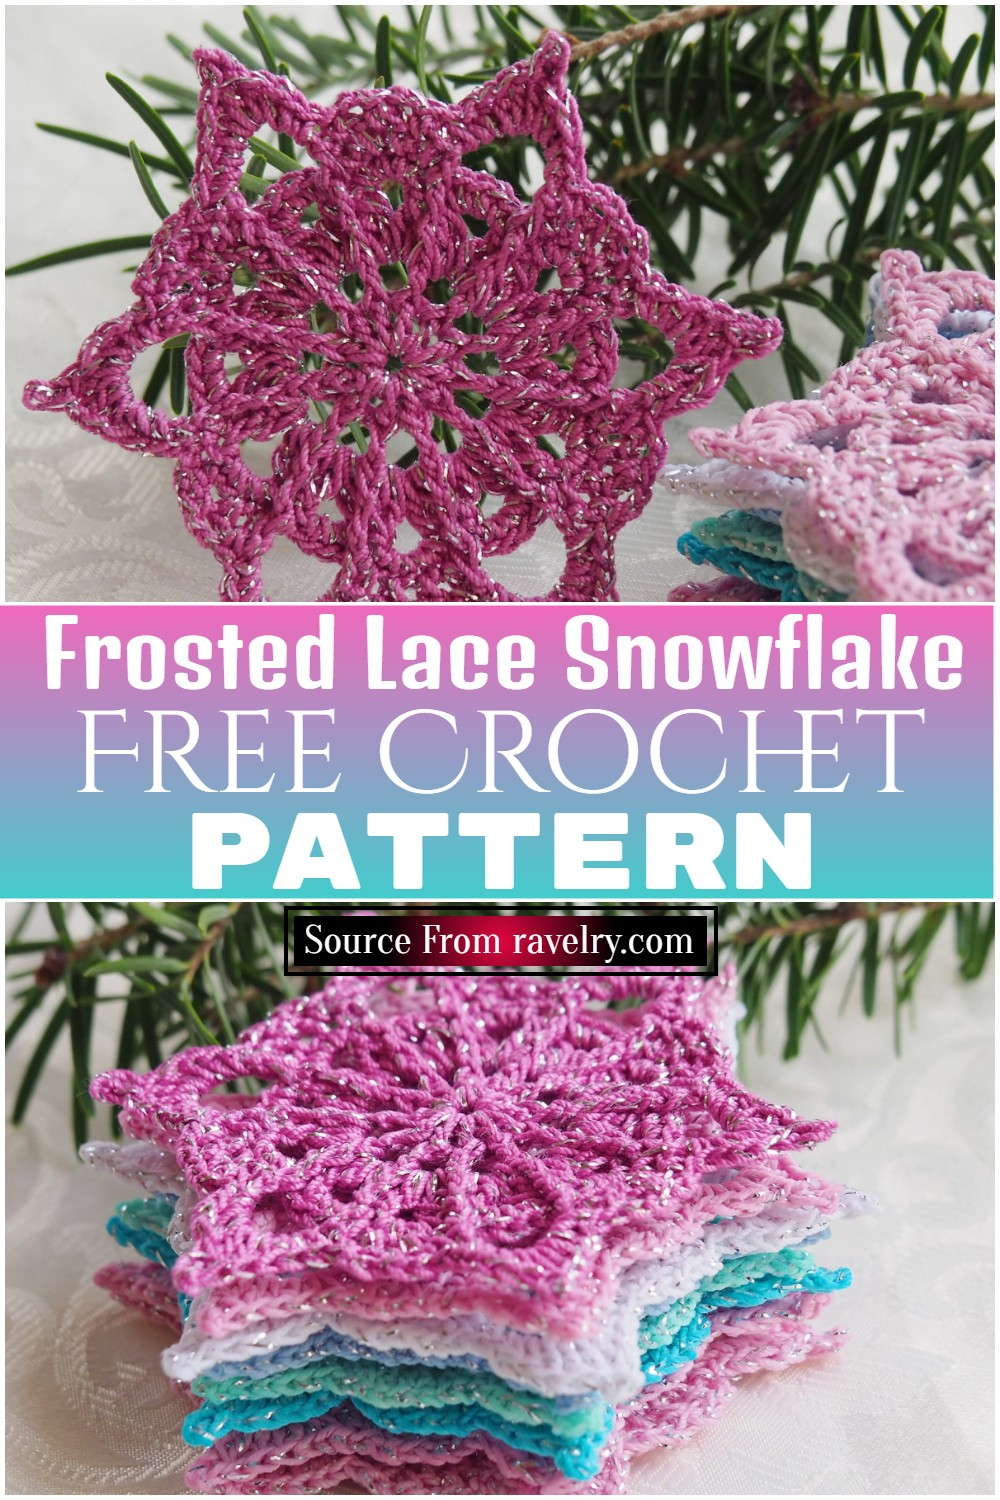 Free Crochet Frosted Lace Snowflake pattern